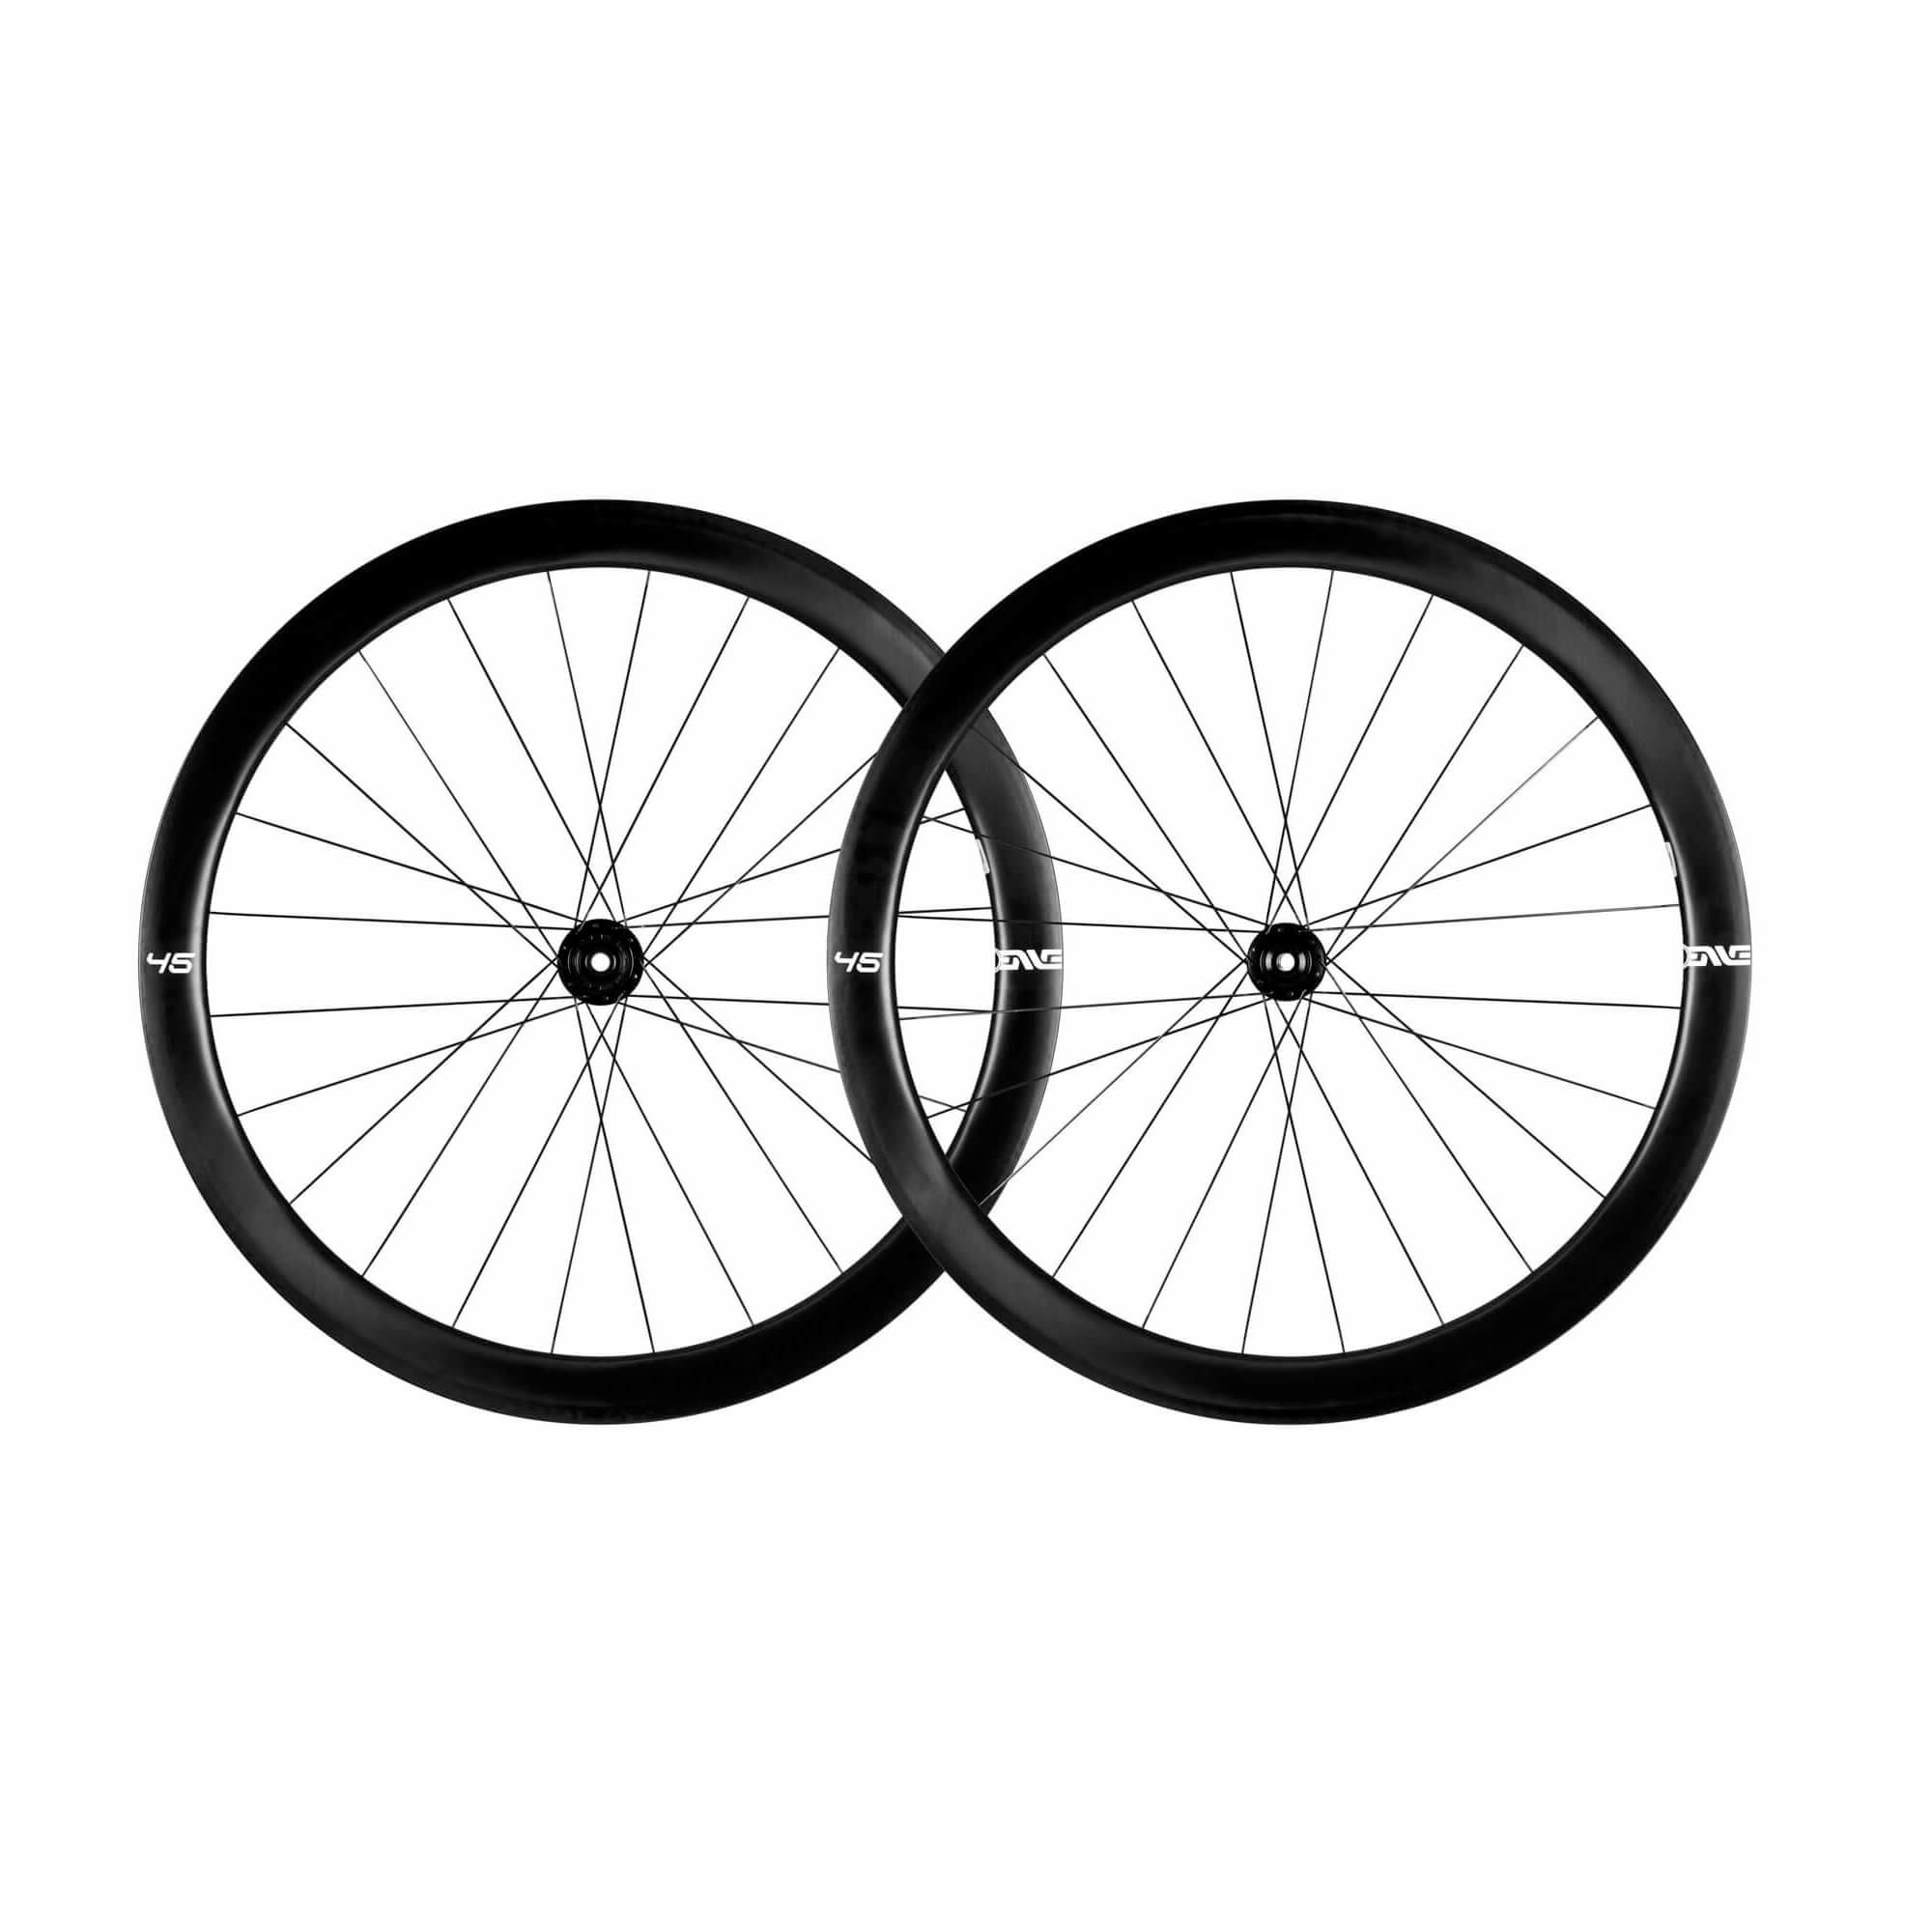 Wheelset Disc Foundation 12/142 XDR CL-1